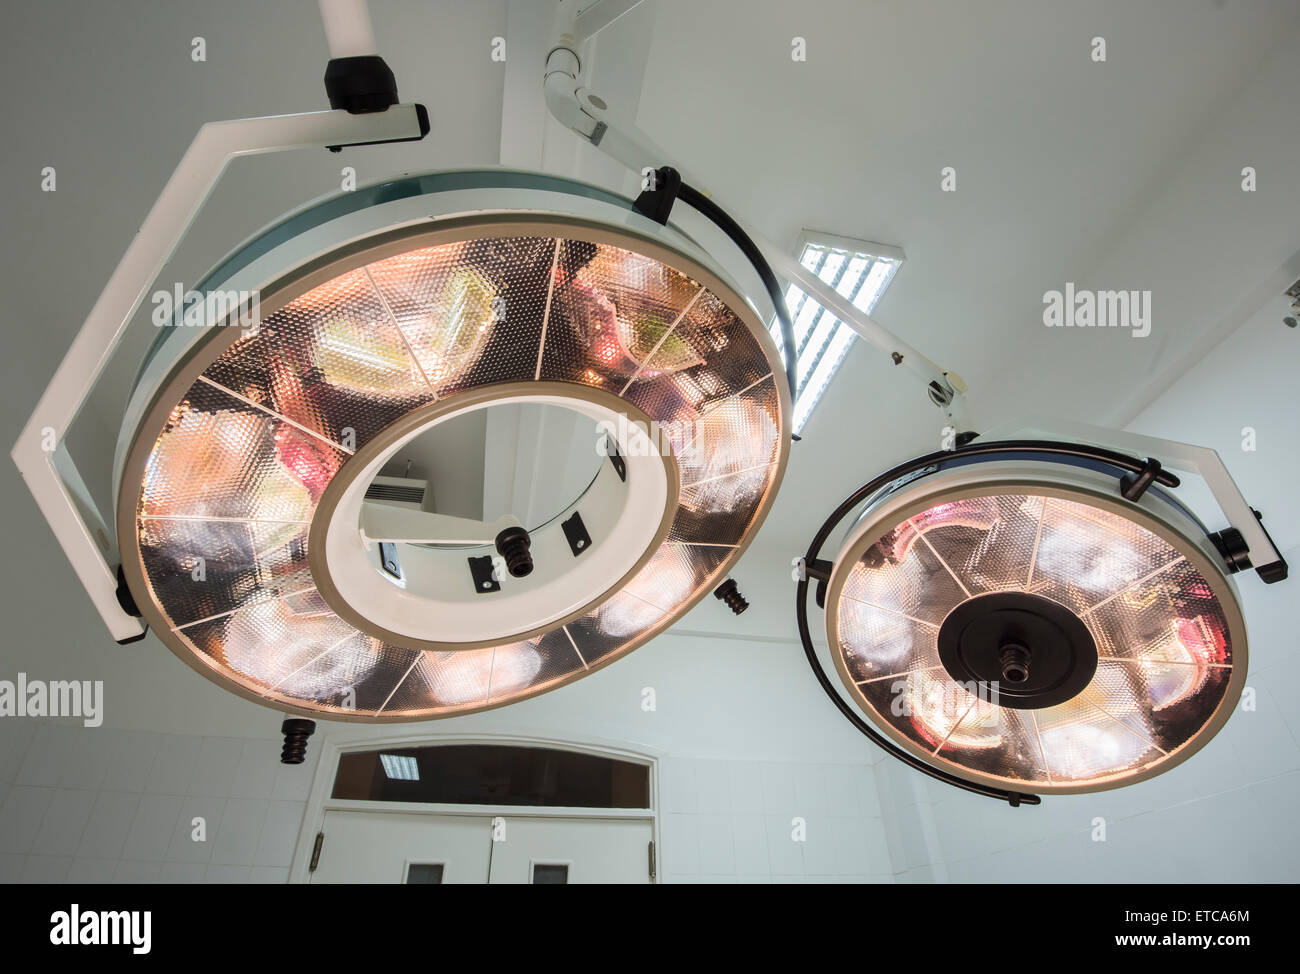 High powered circular surgery lights in a hospital operating room Stock Photo